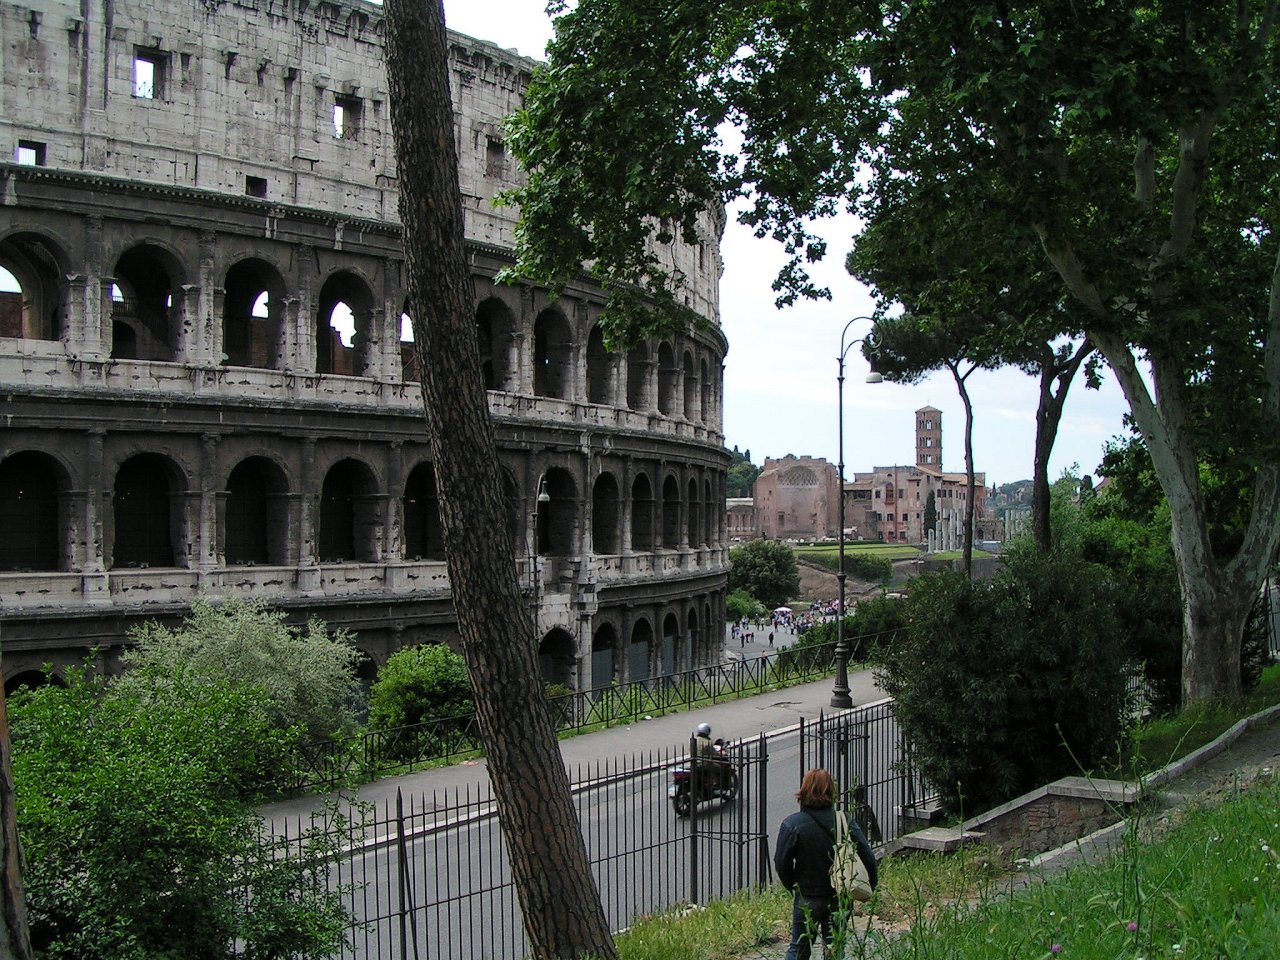 The Colosseum, Rome Attractions, Best Places to visit in Rome